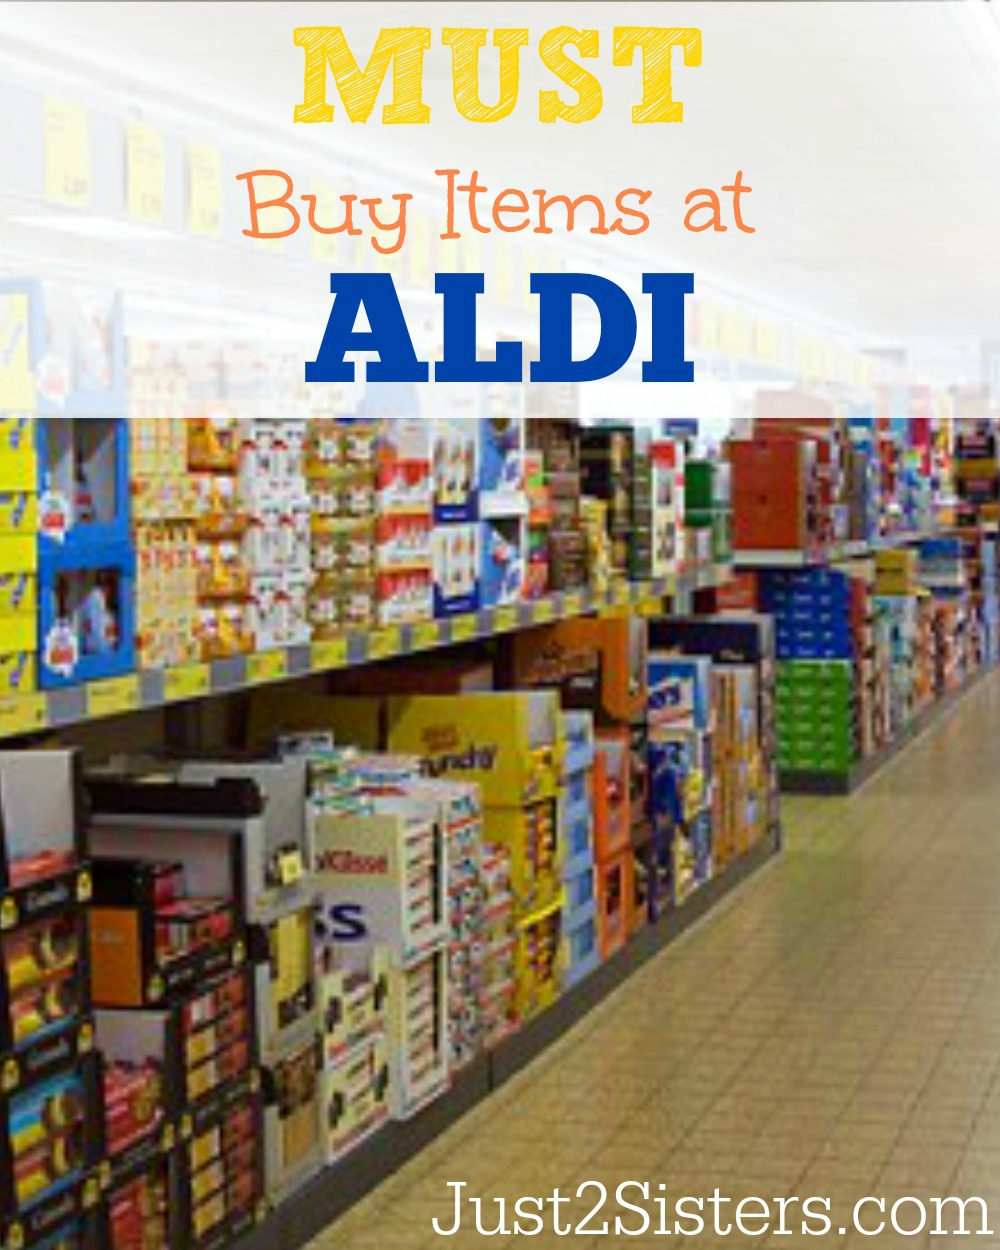 Must Buy Items At Aldi just2sisters.com